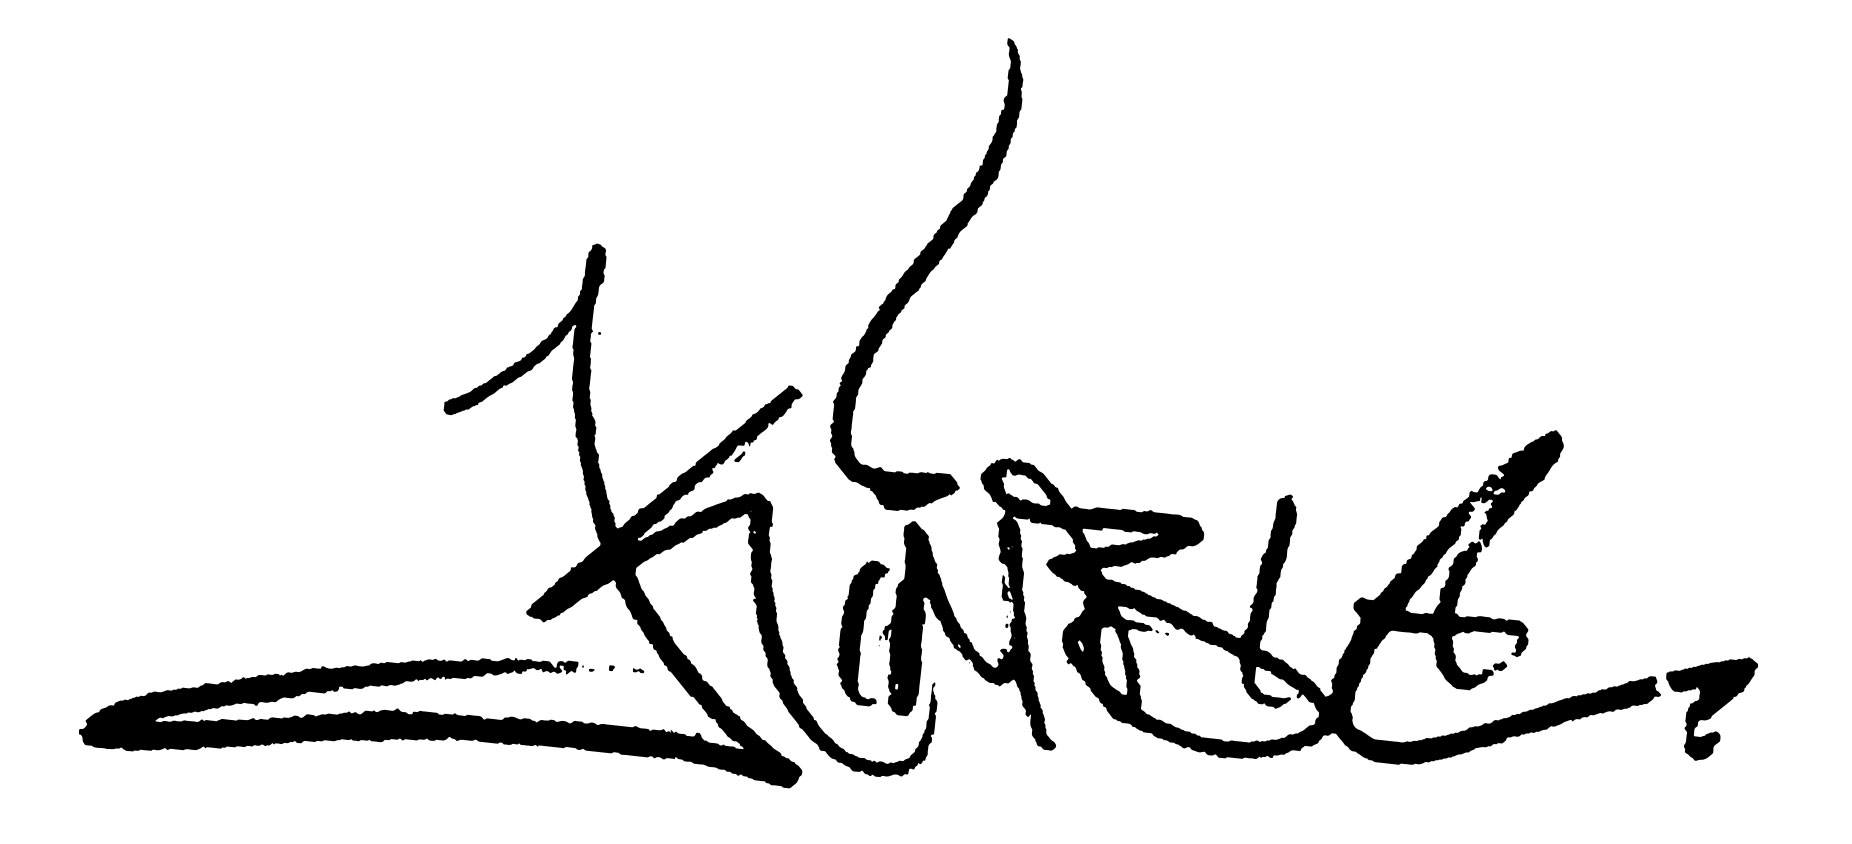 Joe Kimble's Signature